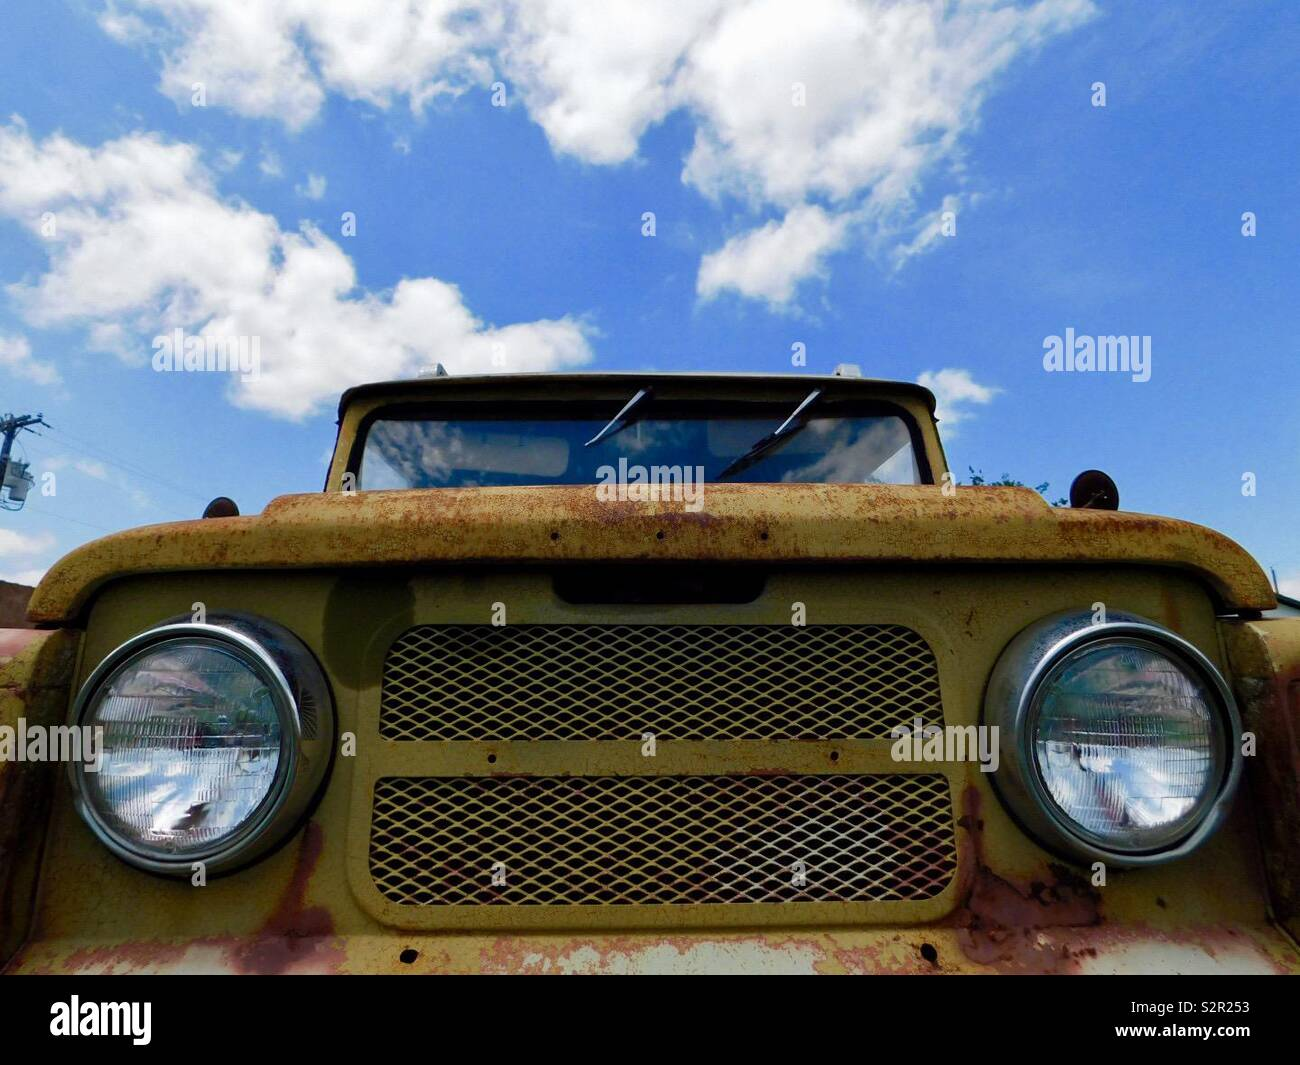 Yellow classic/vintage rusty front end of Jeep with headlights and grill agains a bright blue sky with fluffy clouds. - Stock Image